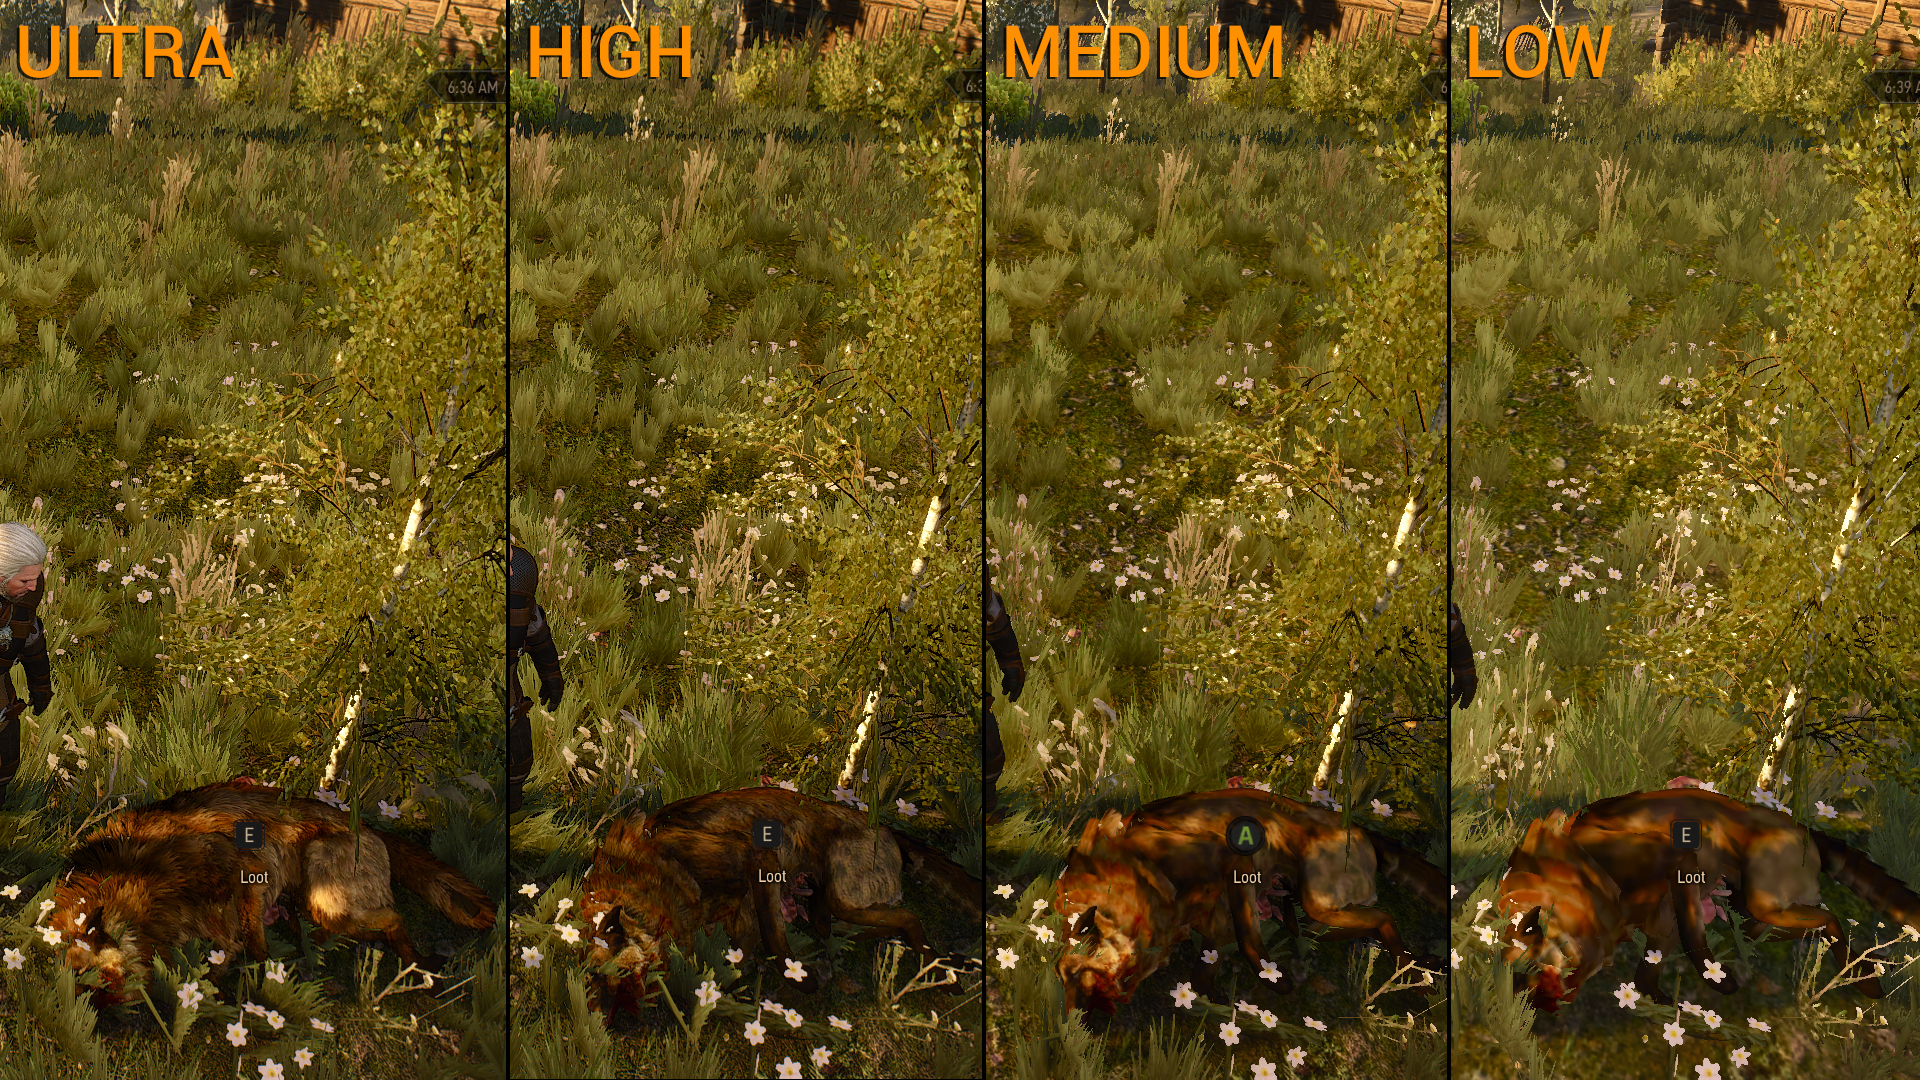 witcher3_texturequality-comparison03